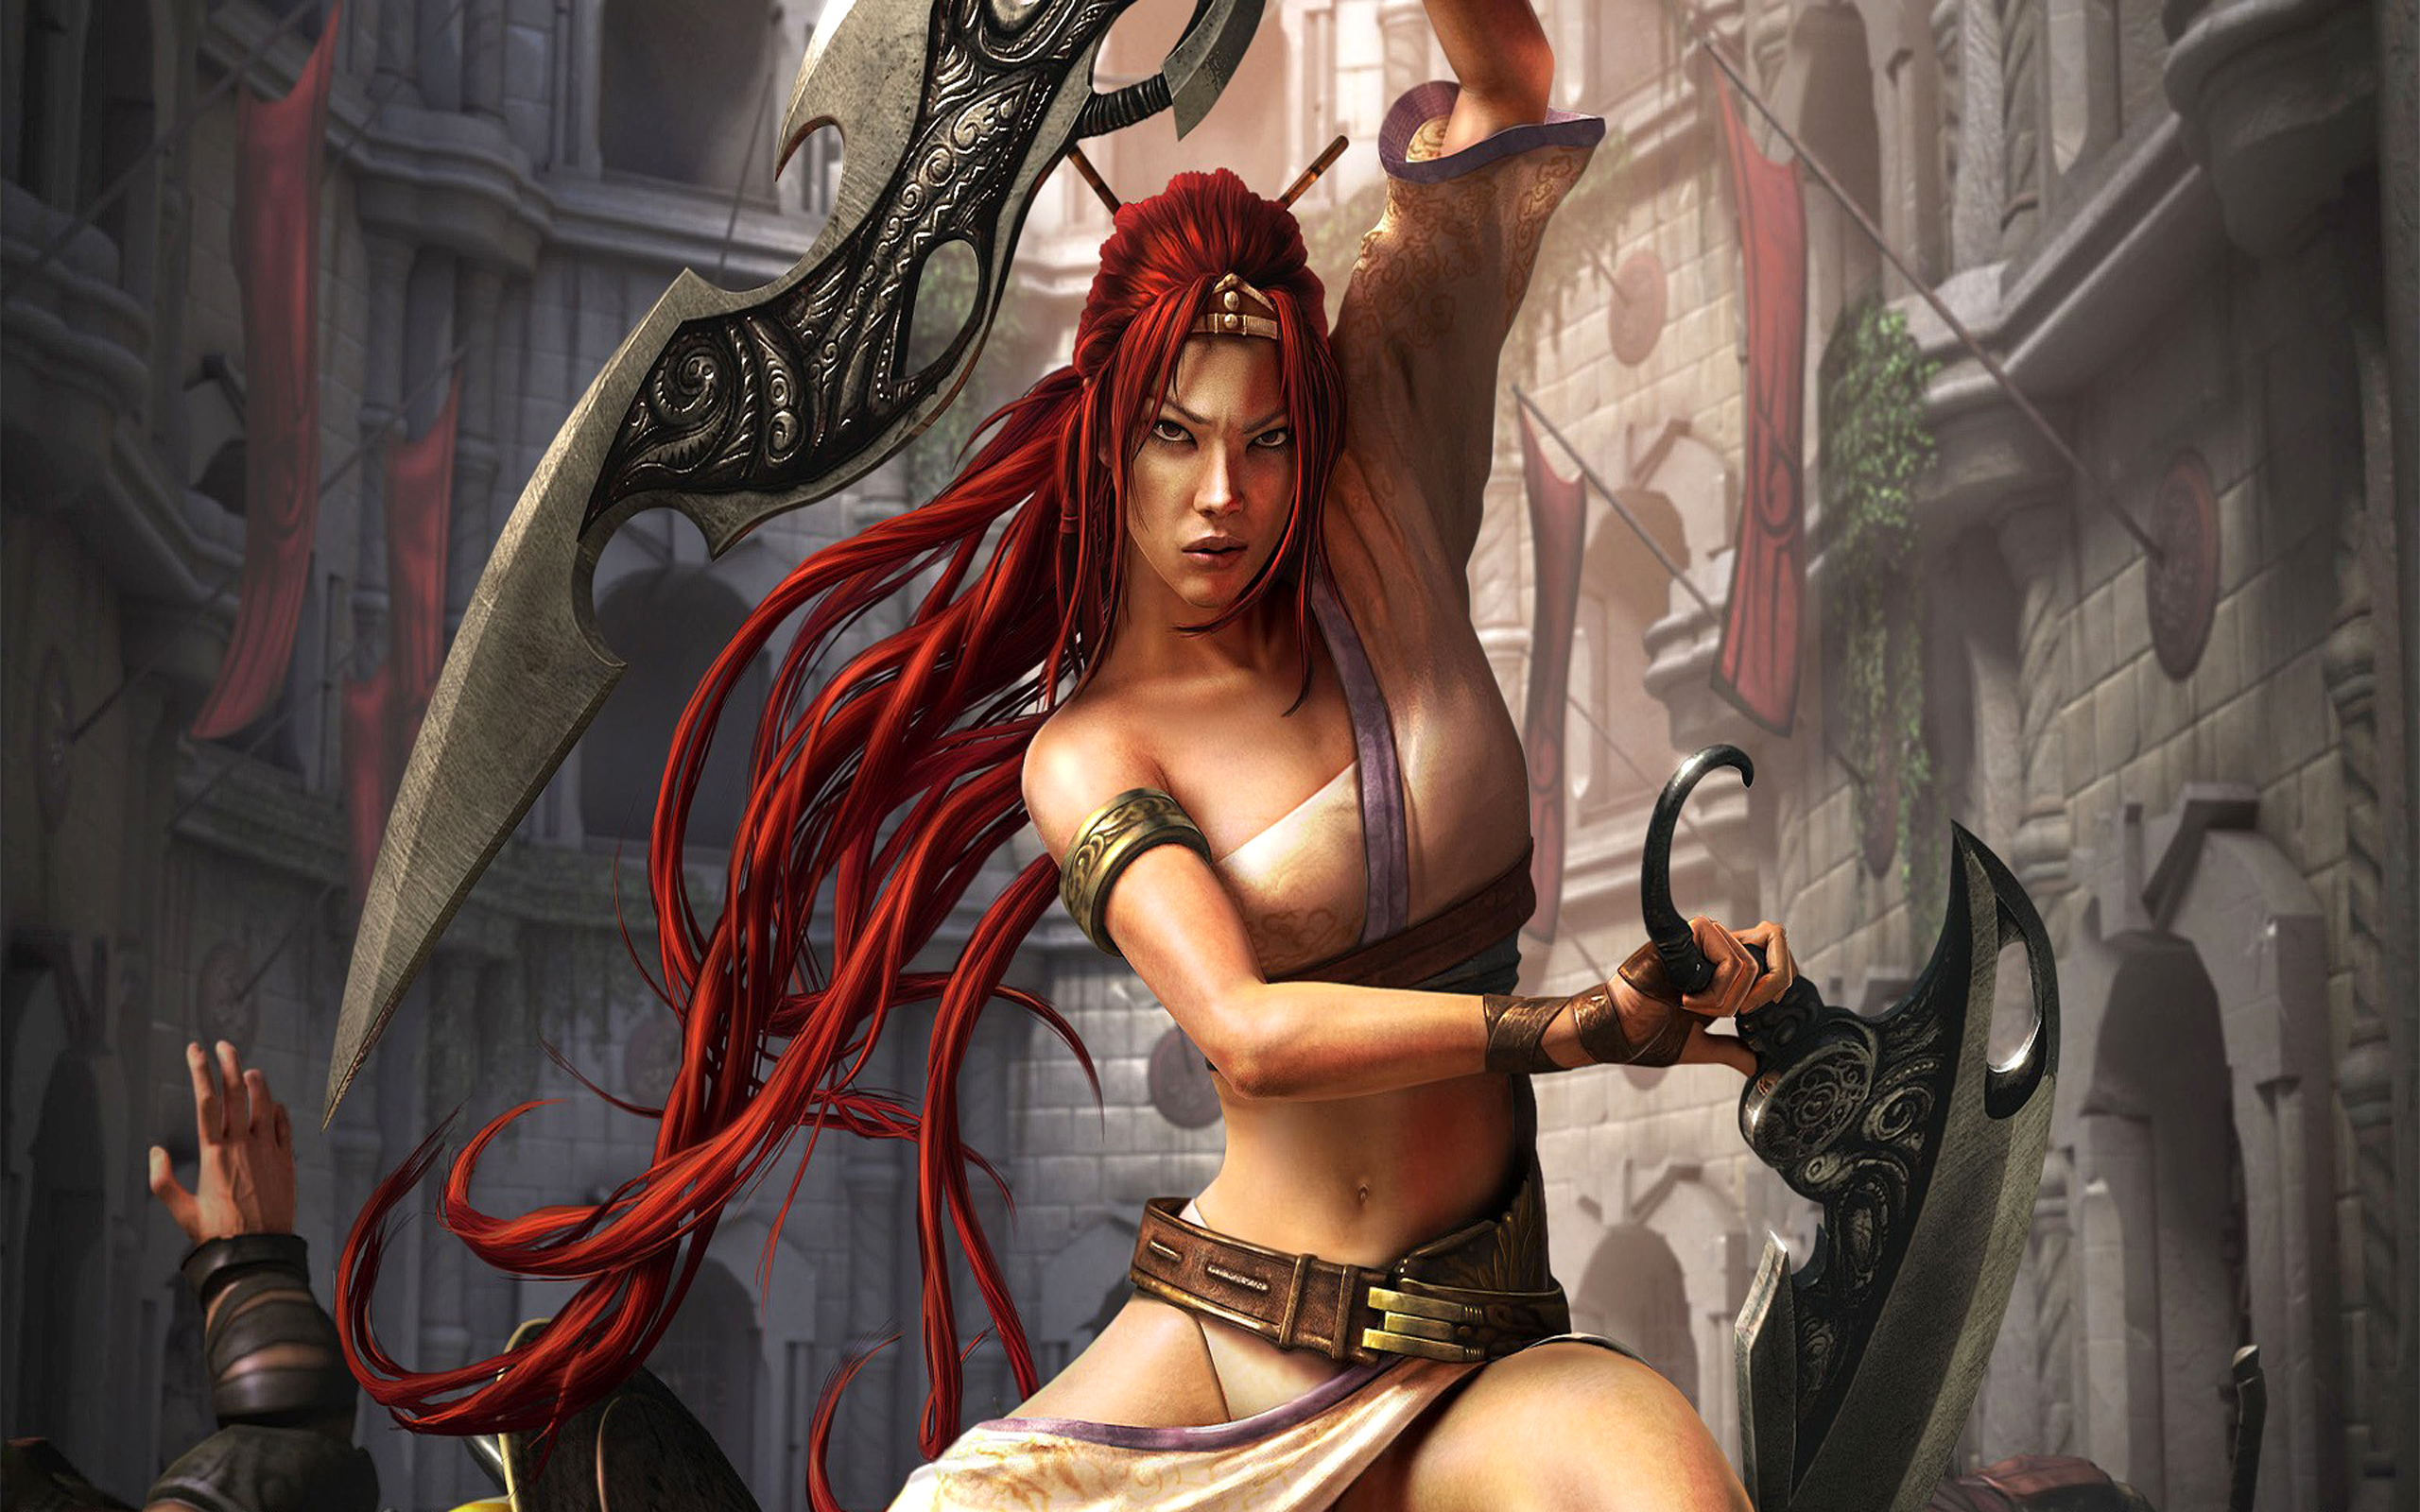 Jeux Vidéo - Heavenly Sword  Fantaisie Woman Woman Warrior Red Hair Epée Belt Fond d'écran